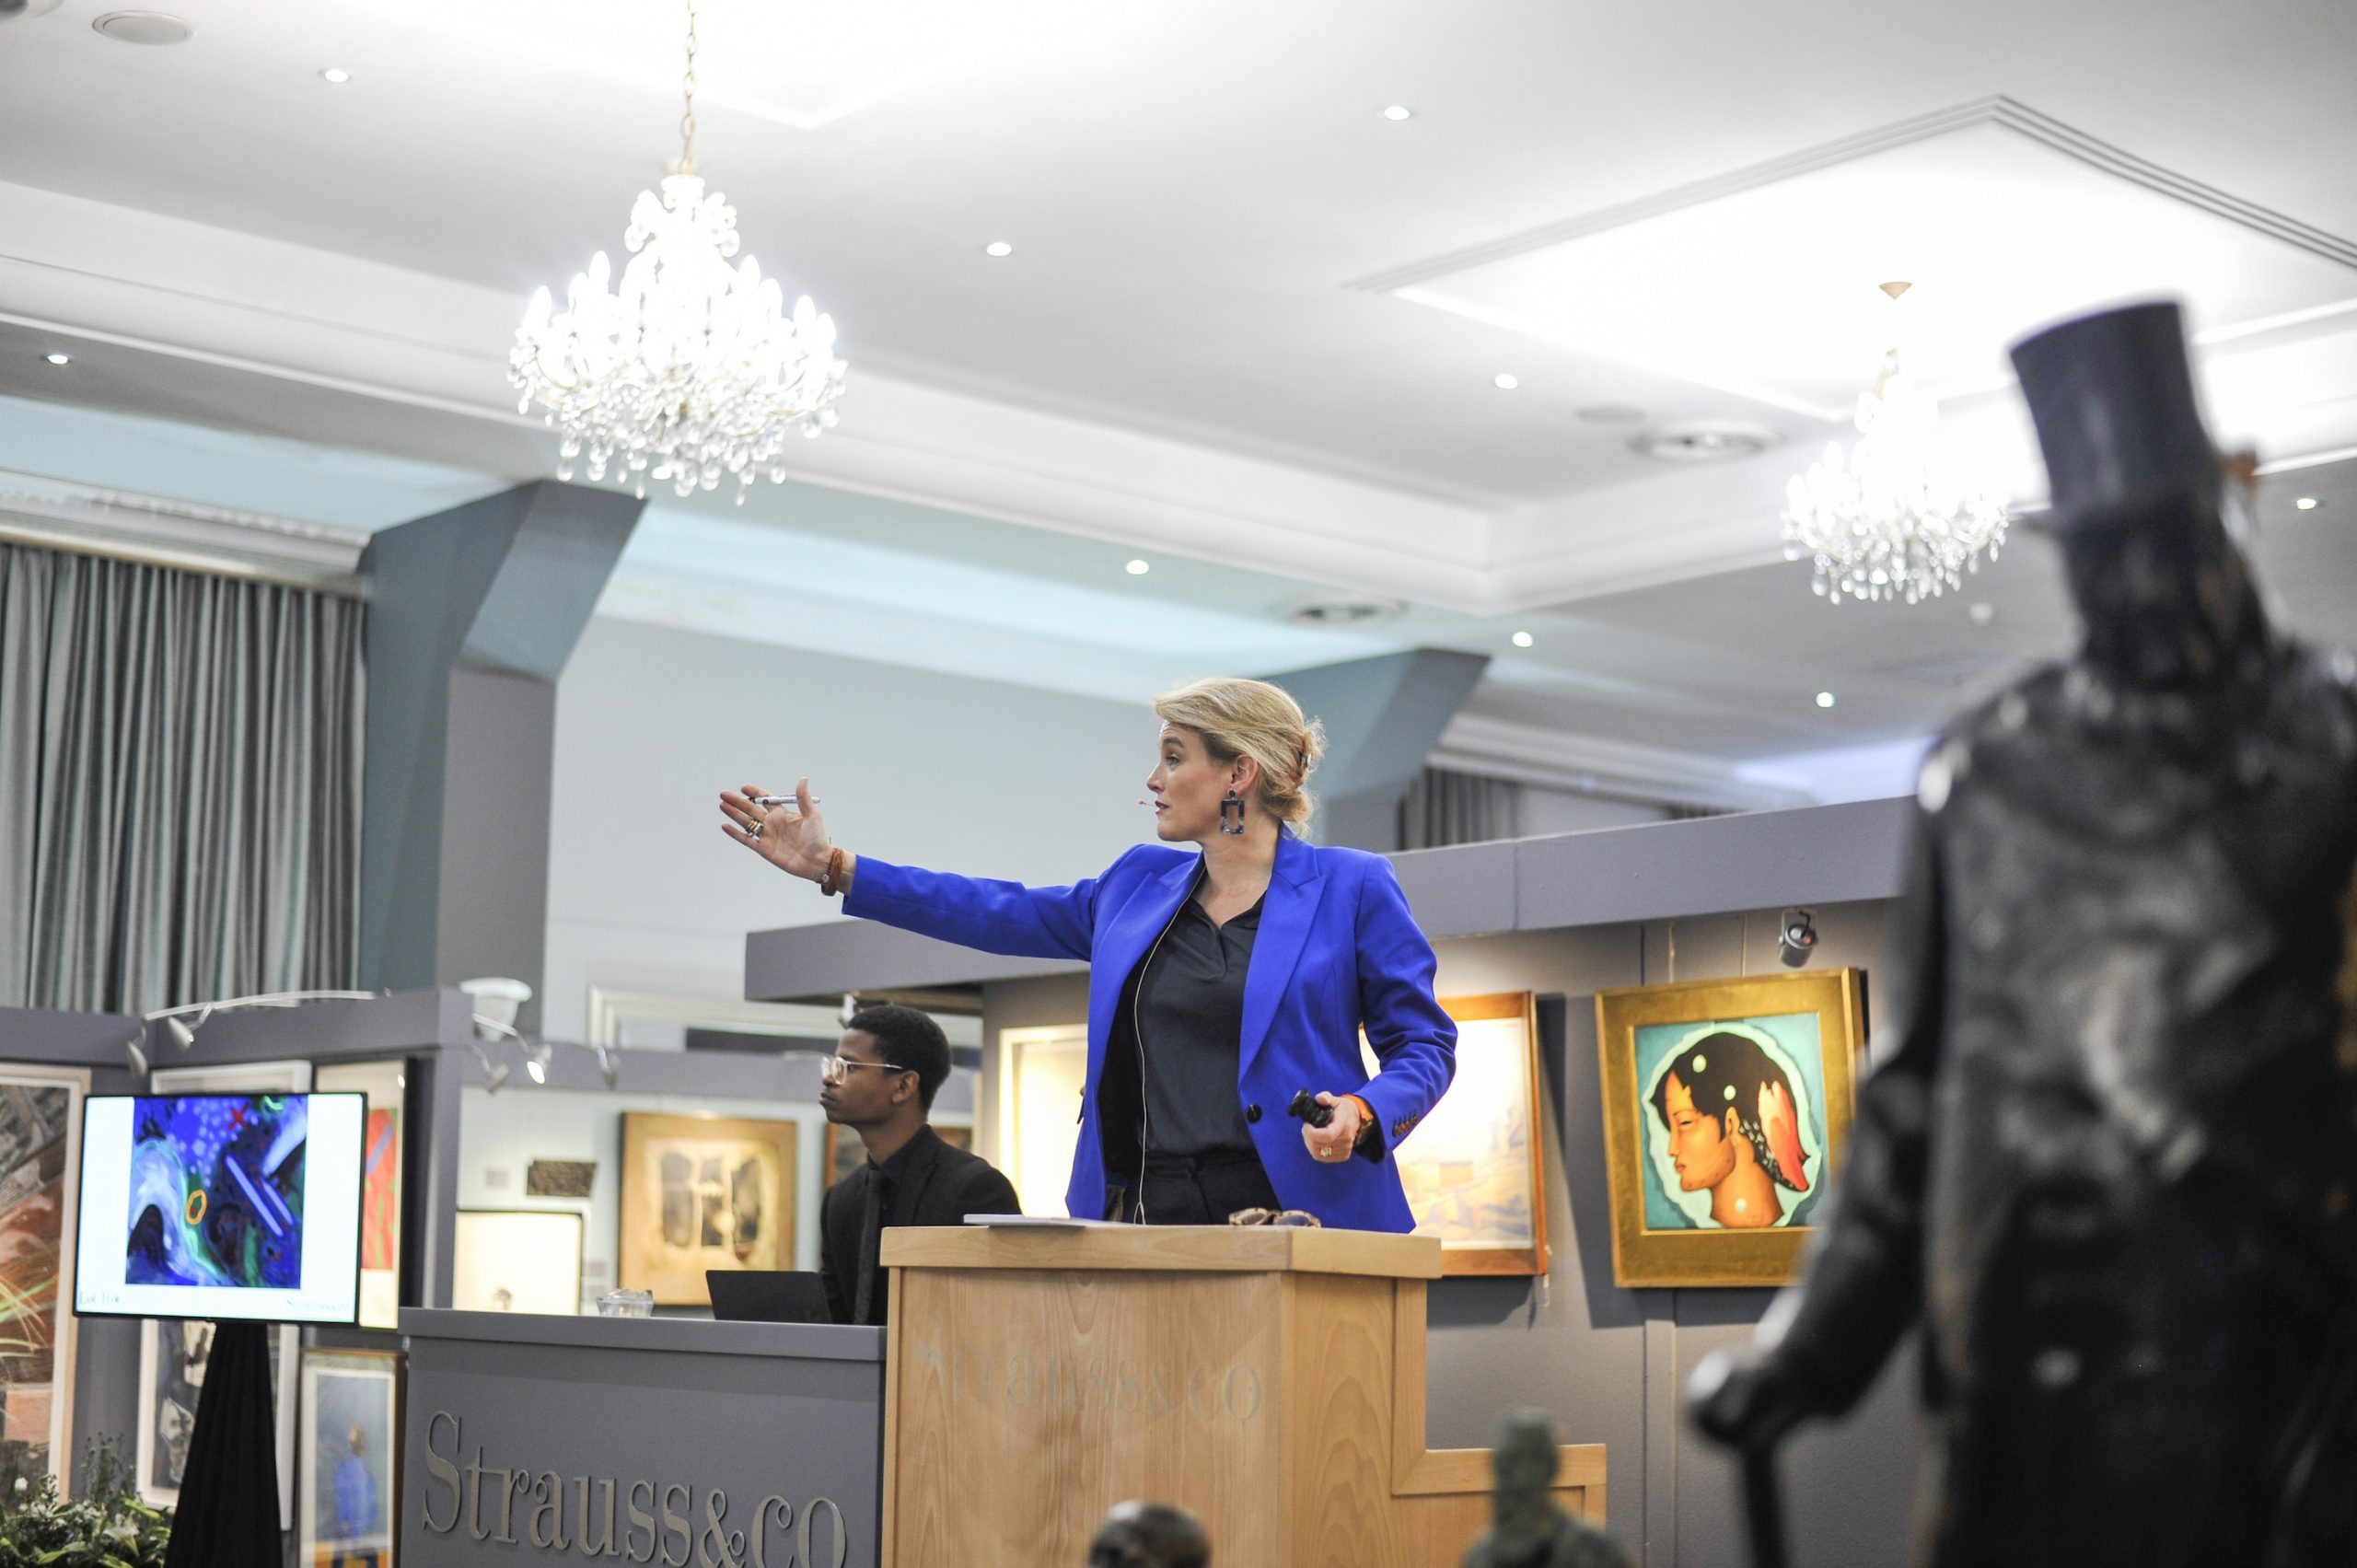 Susie Goodman_Executive Director Strauss & Co auctions